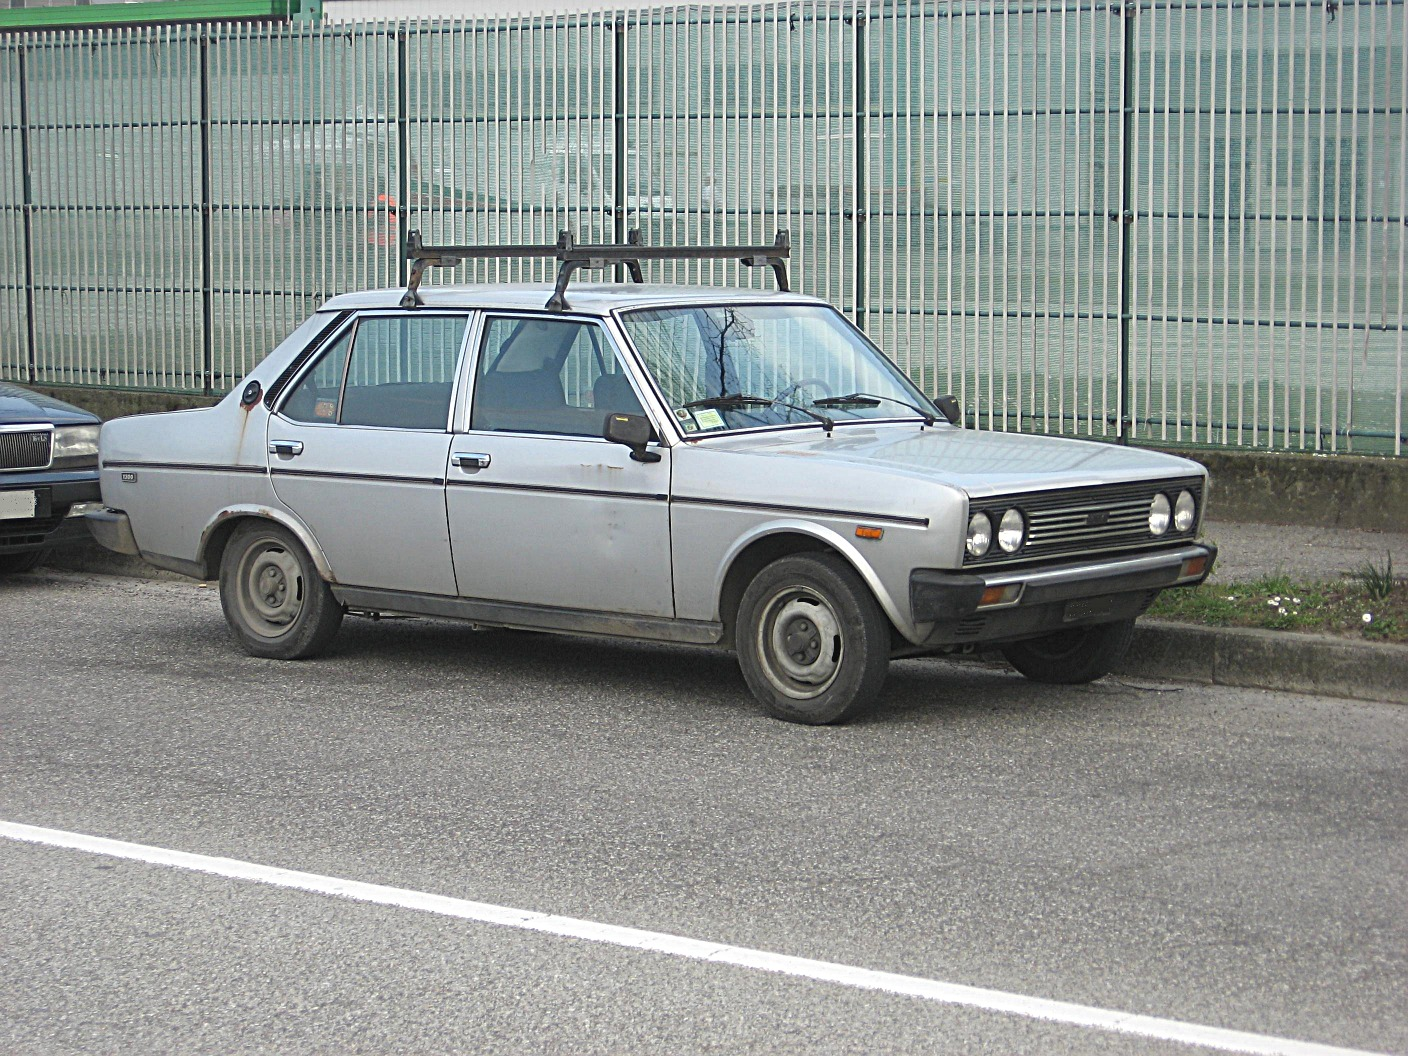 File:Fiat 131-1300CL-Mk1 Front-view.JPG